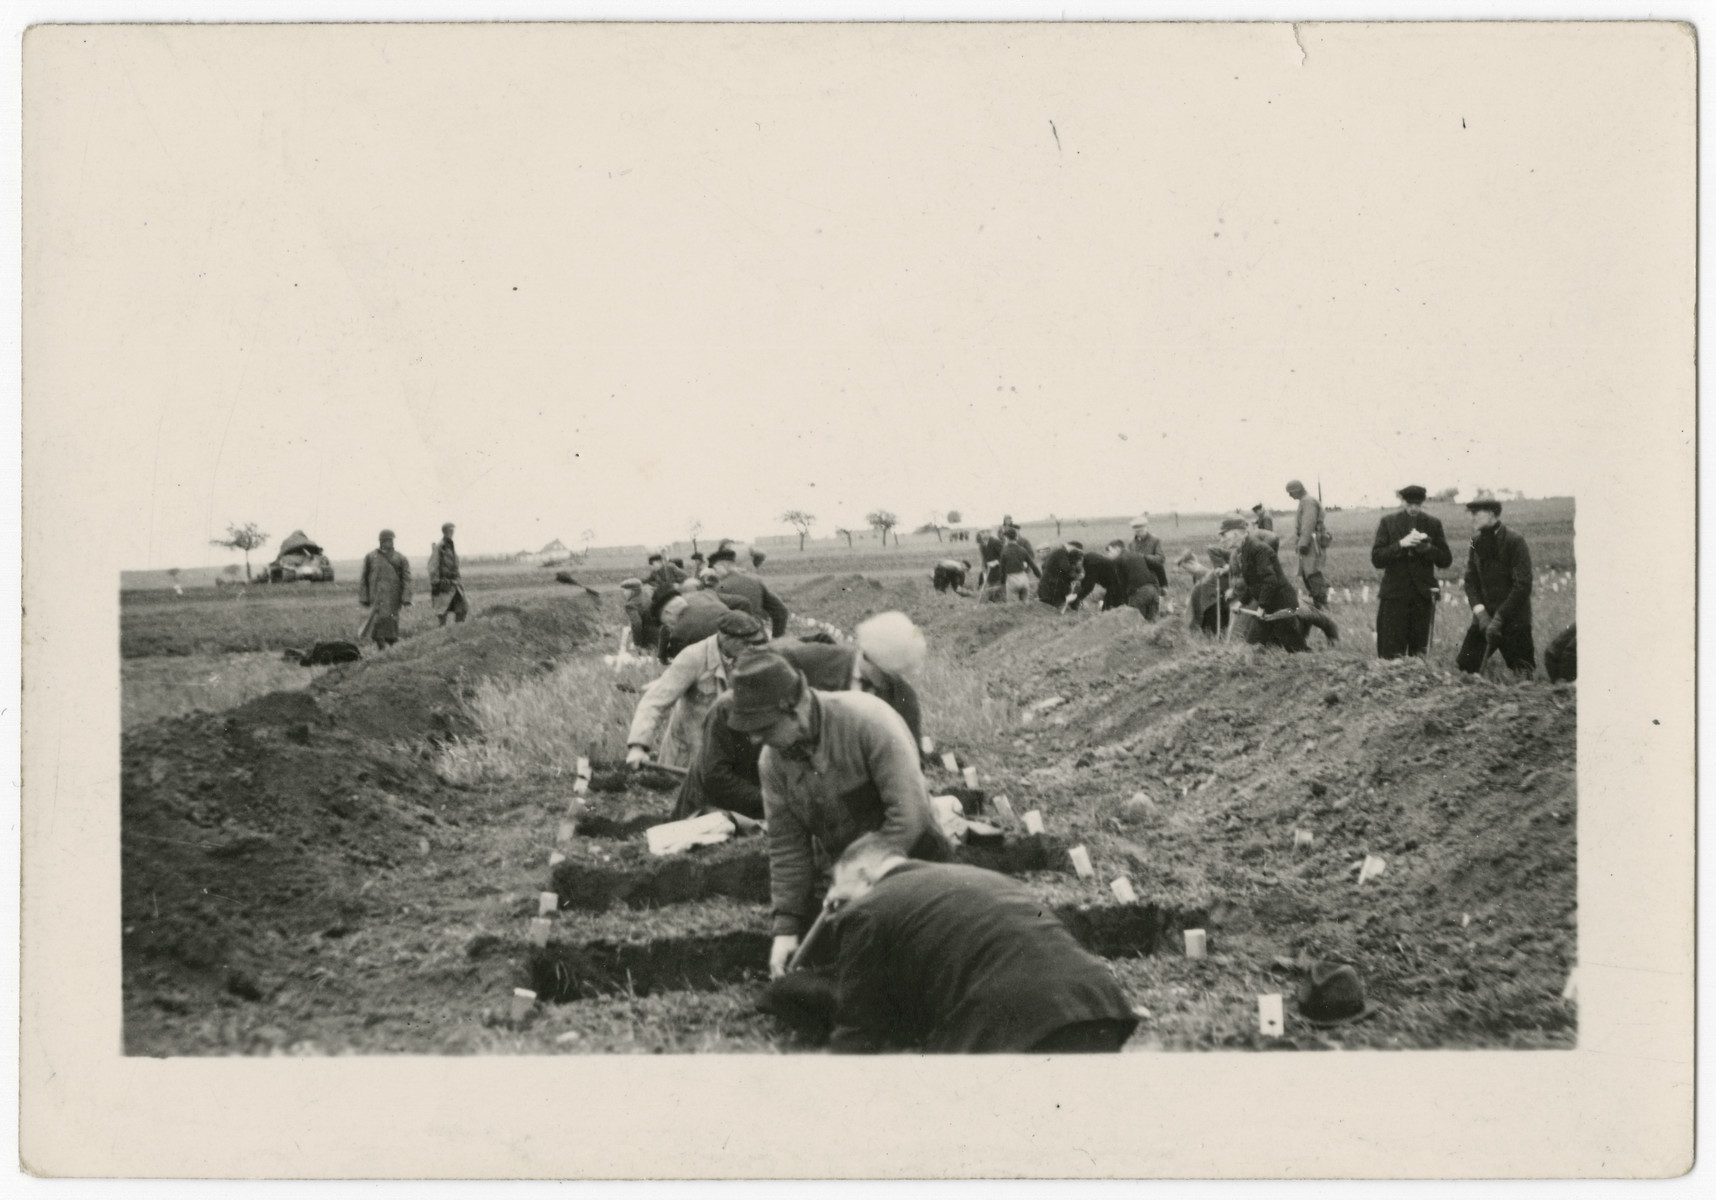 German civilians dig graves for the victims of the Gardelegen atrocity under orders of the American army.